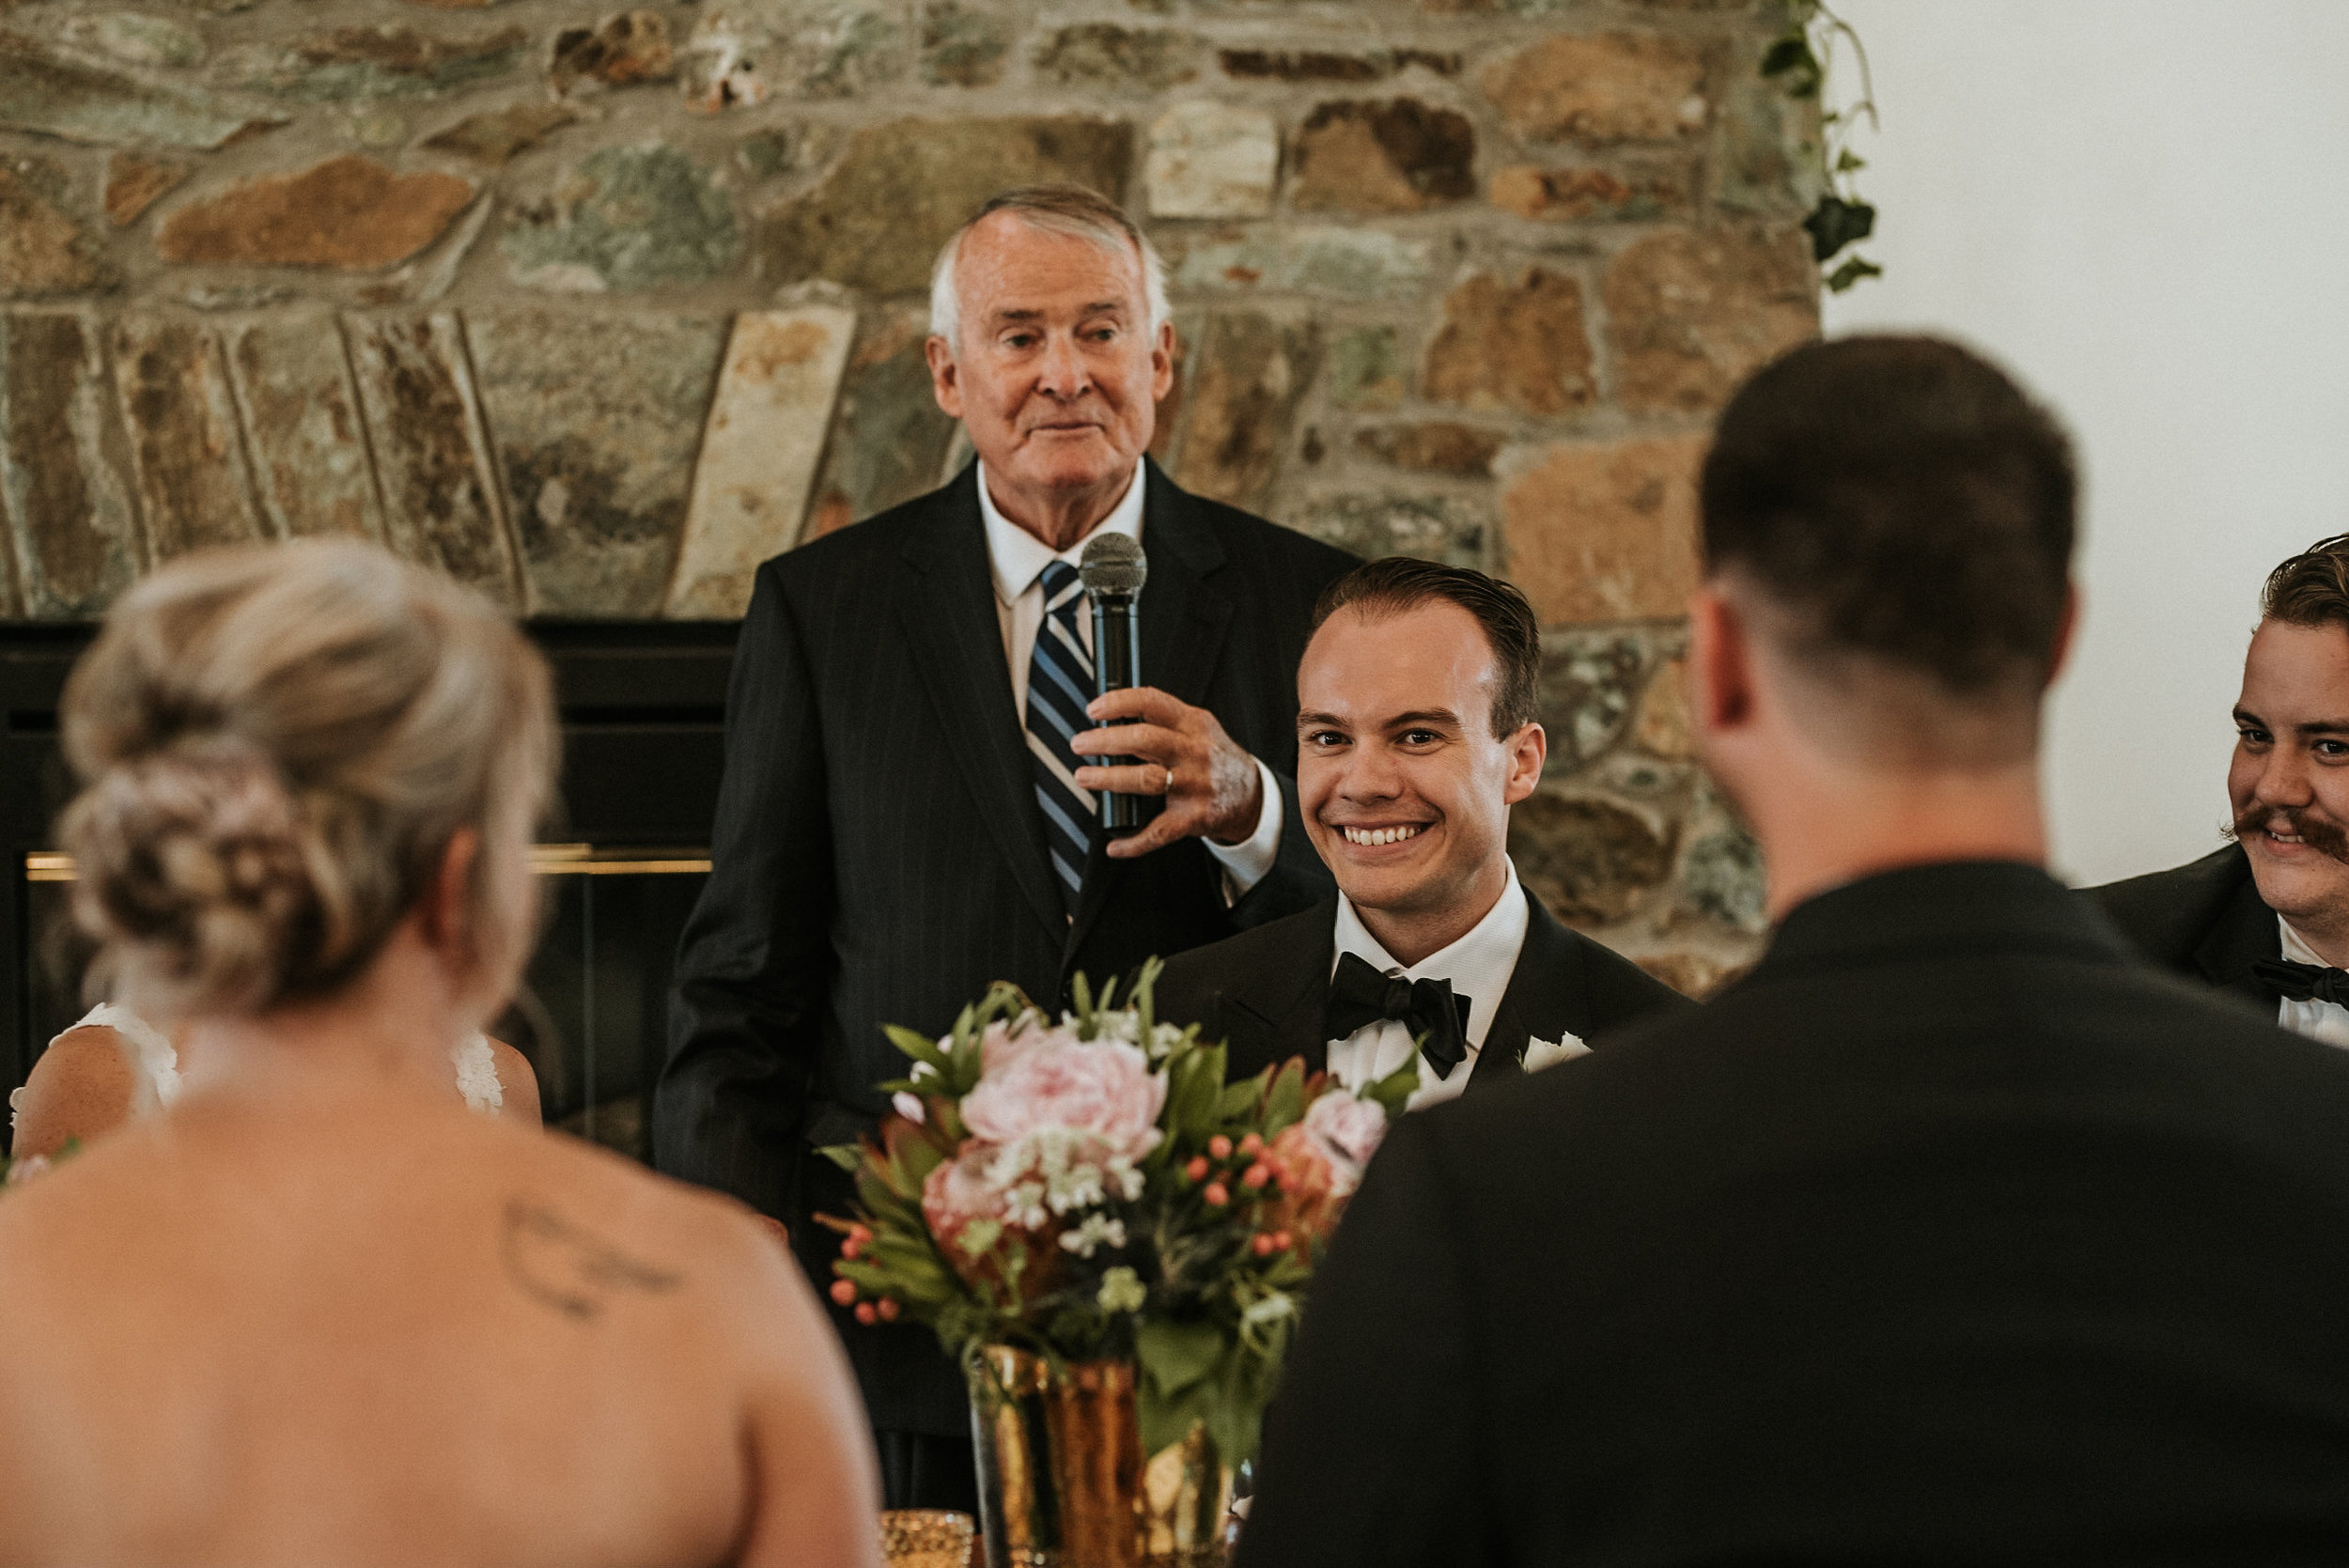 Toasts during wedding